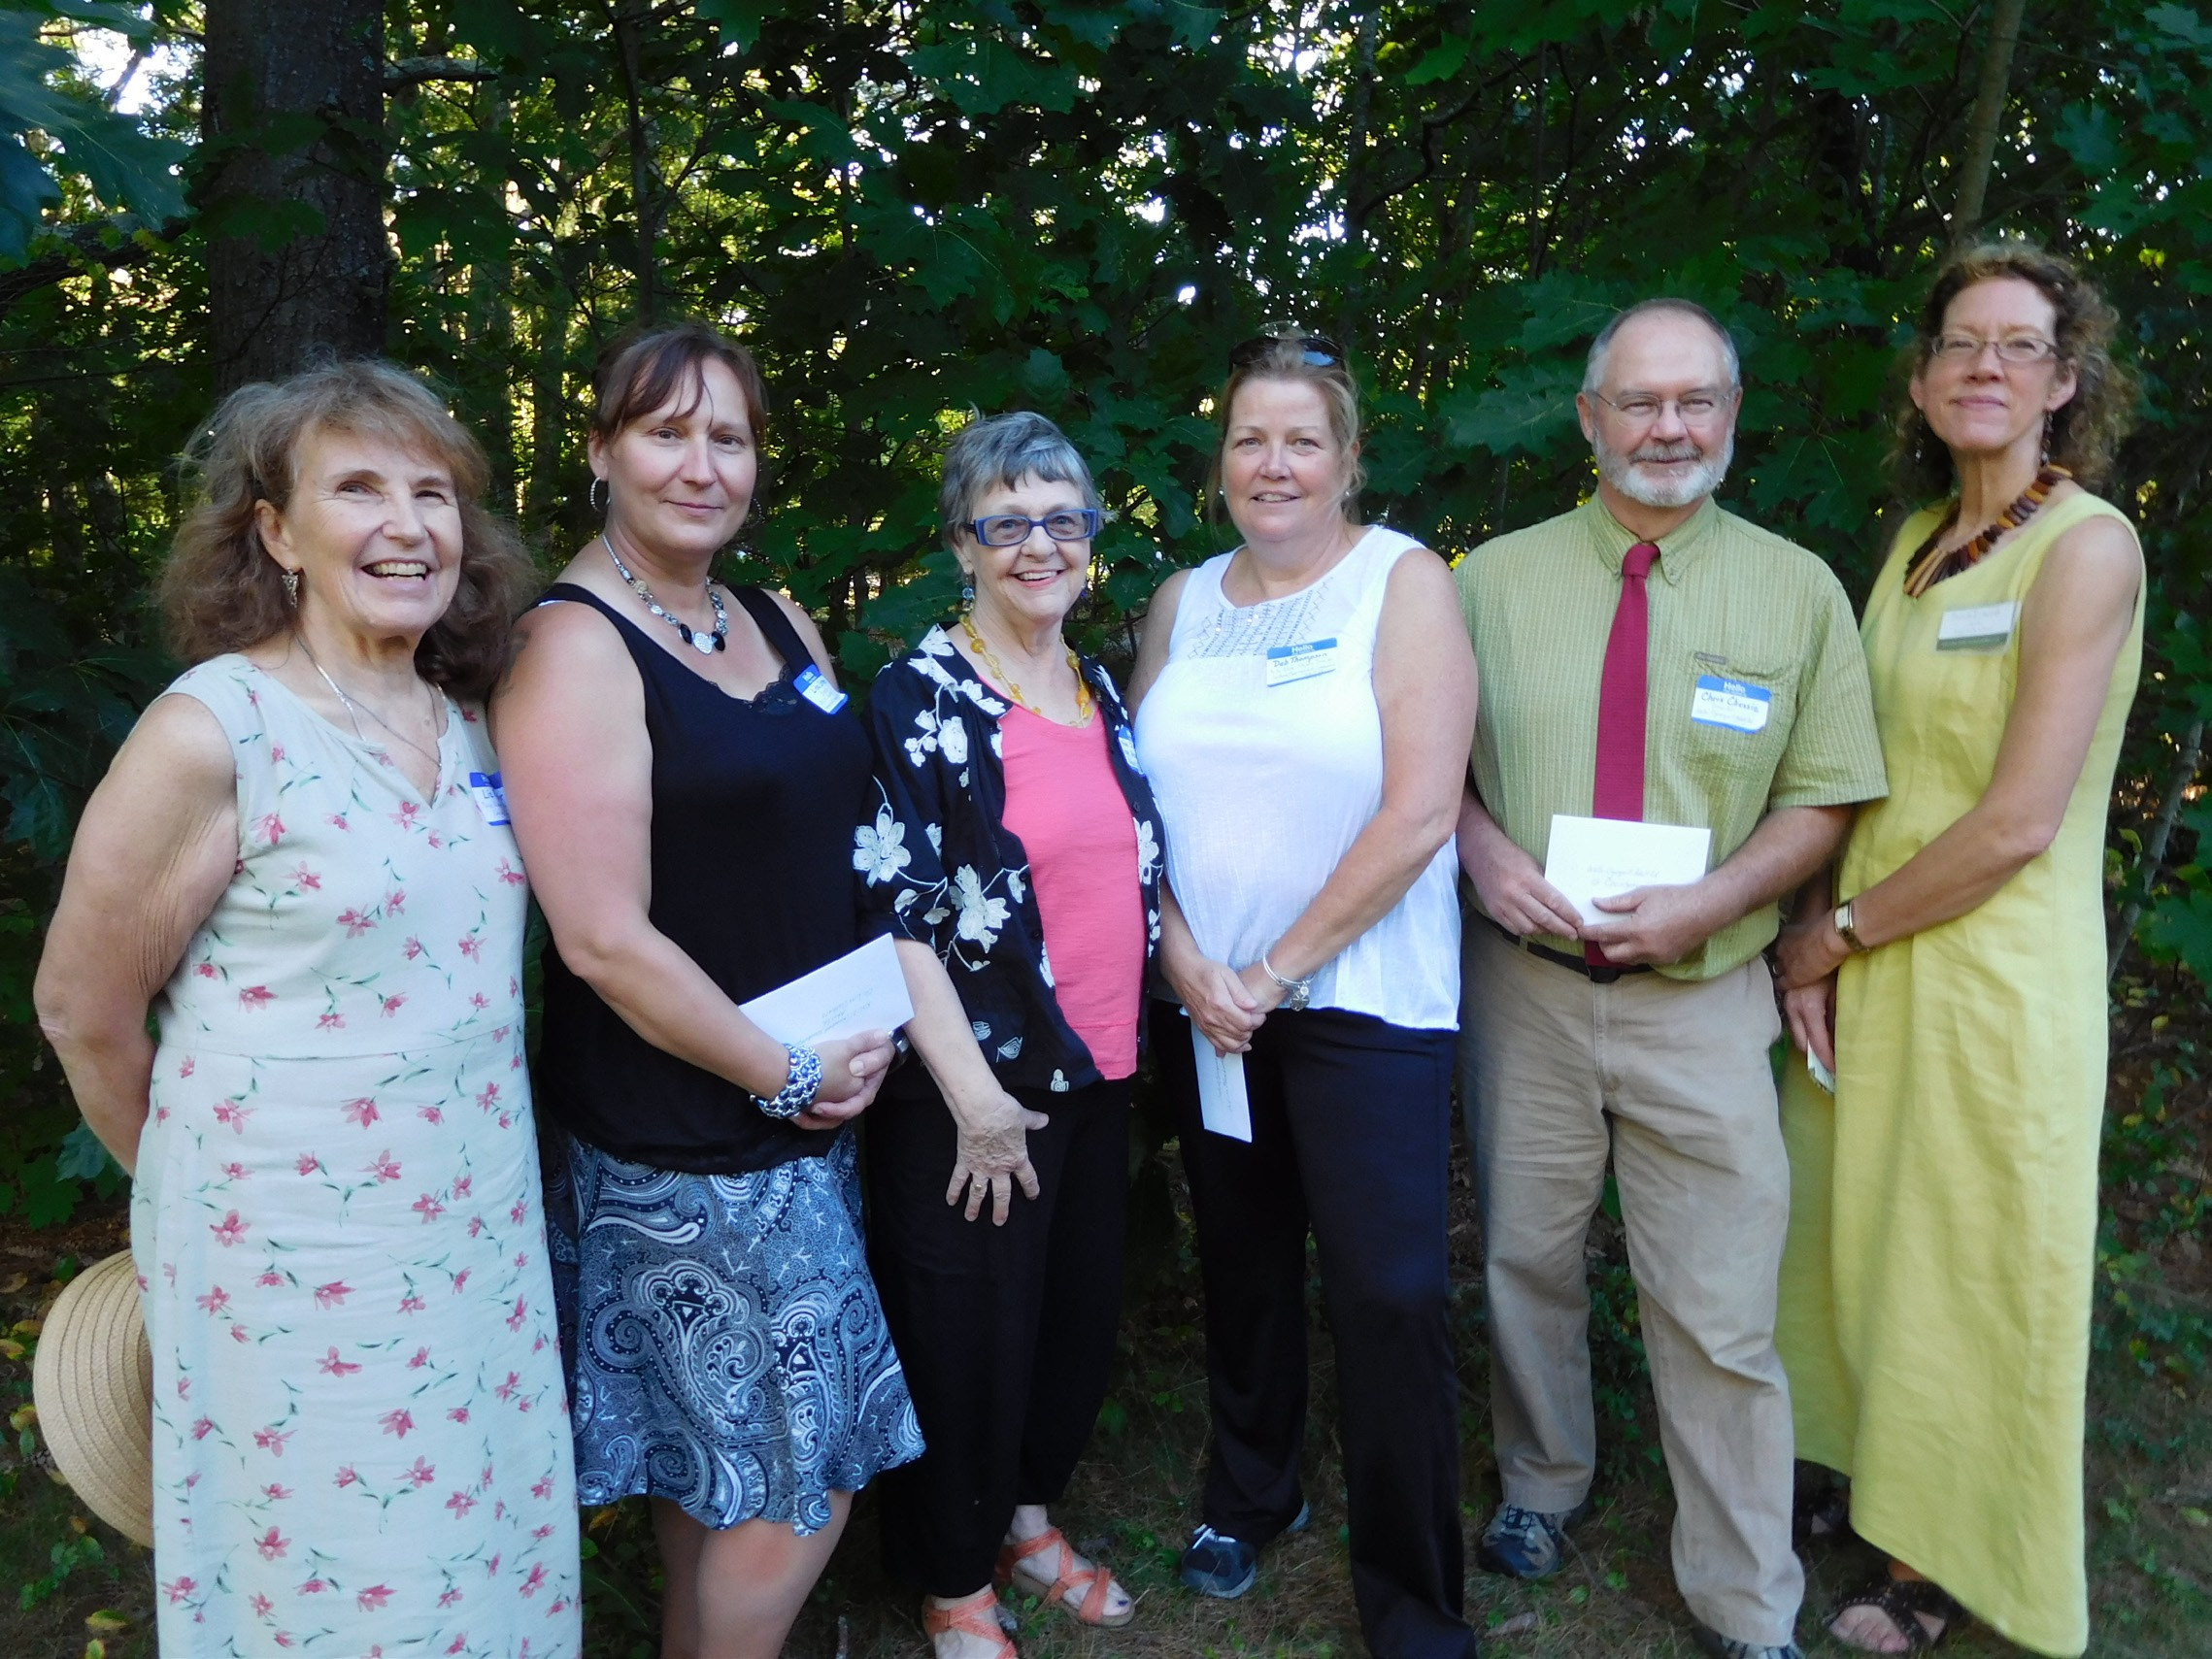 Attending a recent Maine Women in the Arts presentation of scholarships are, left to right, Liz Roper, MWA; Lisa Crothers and Ann Schultz, RSU 21; Deb Thompson, Sanford/Springvale; Christopher Chessie, Wells-Ogunquit; and Pam Edwards, MWA chairperson.